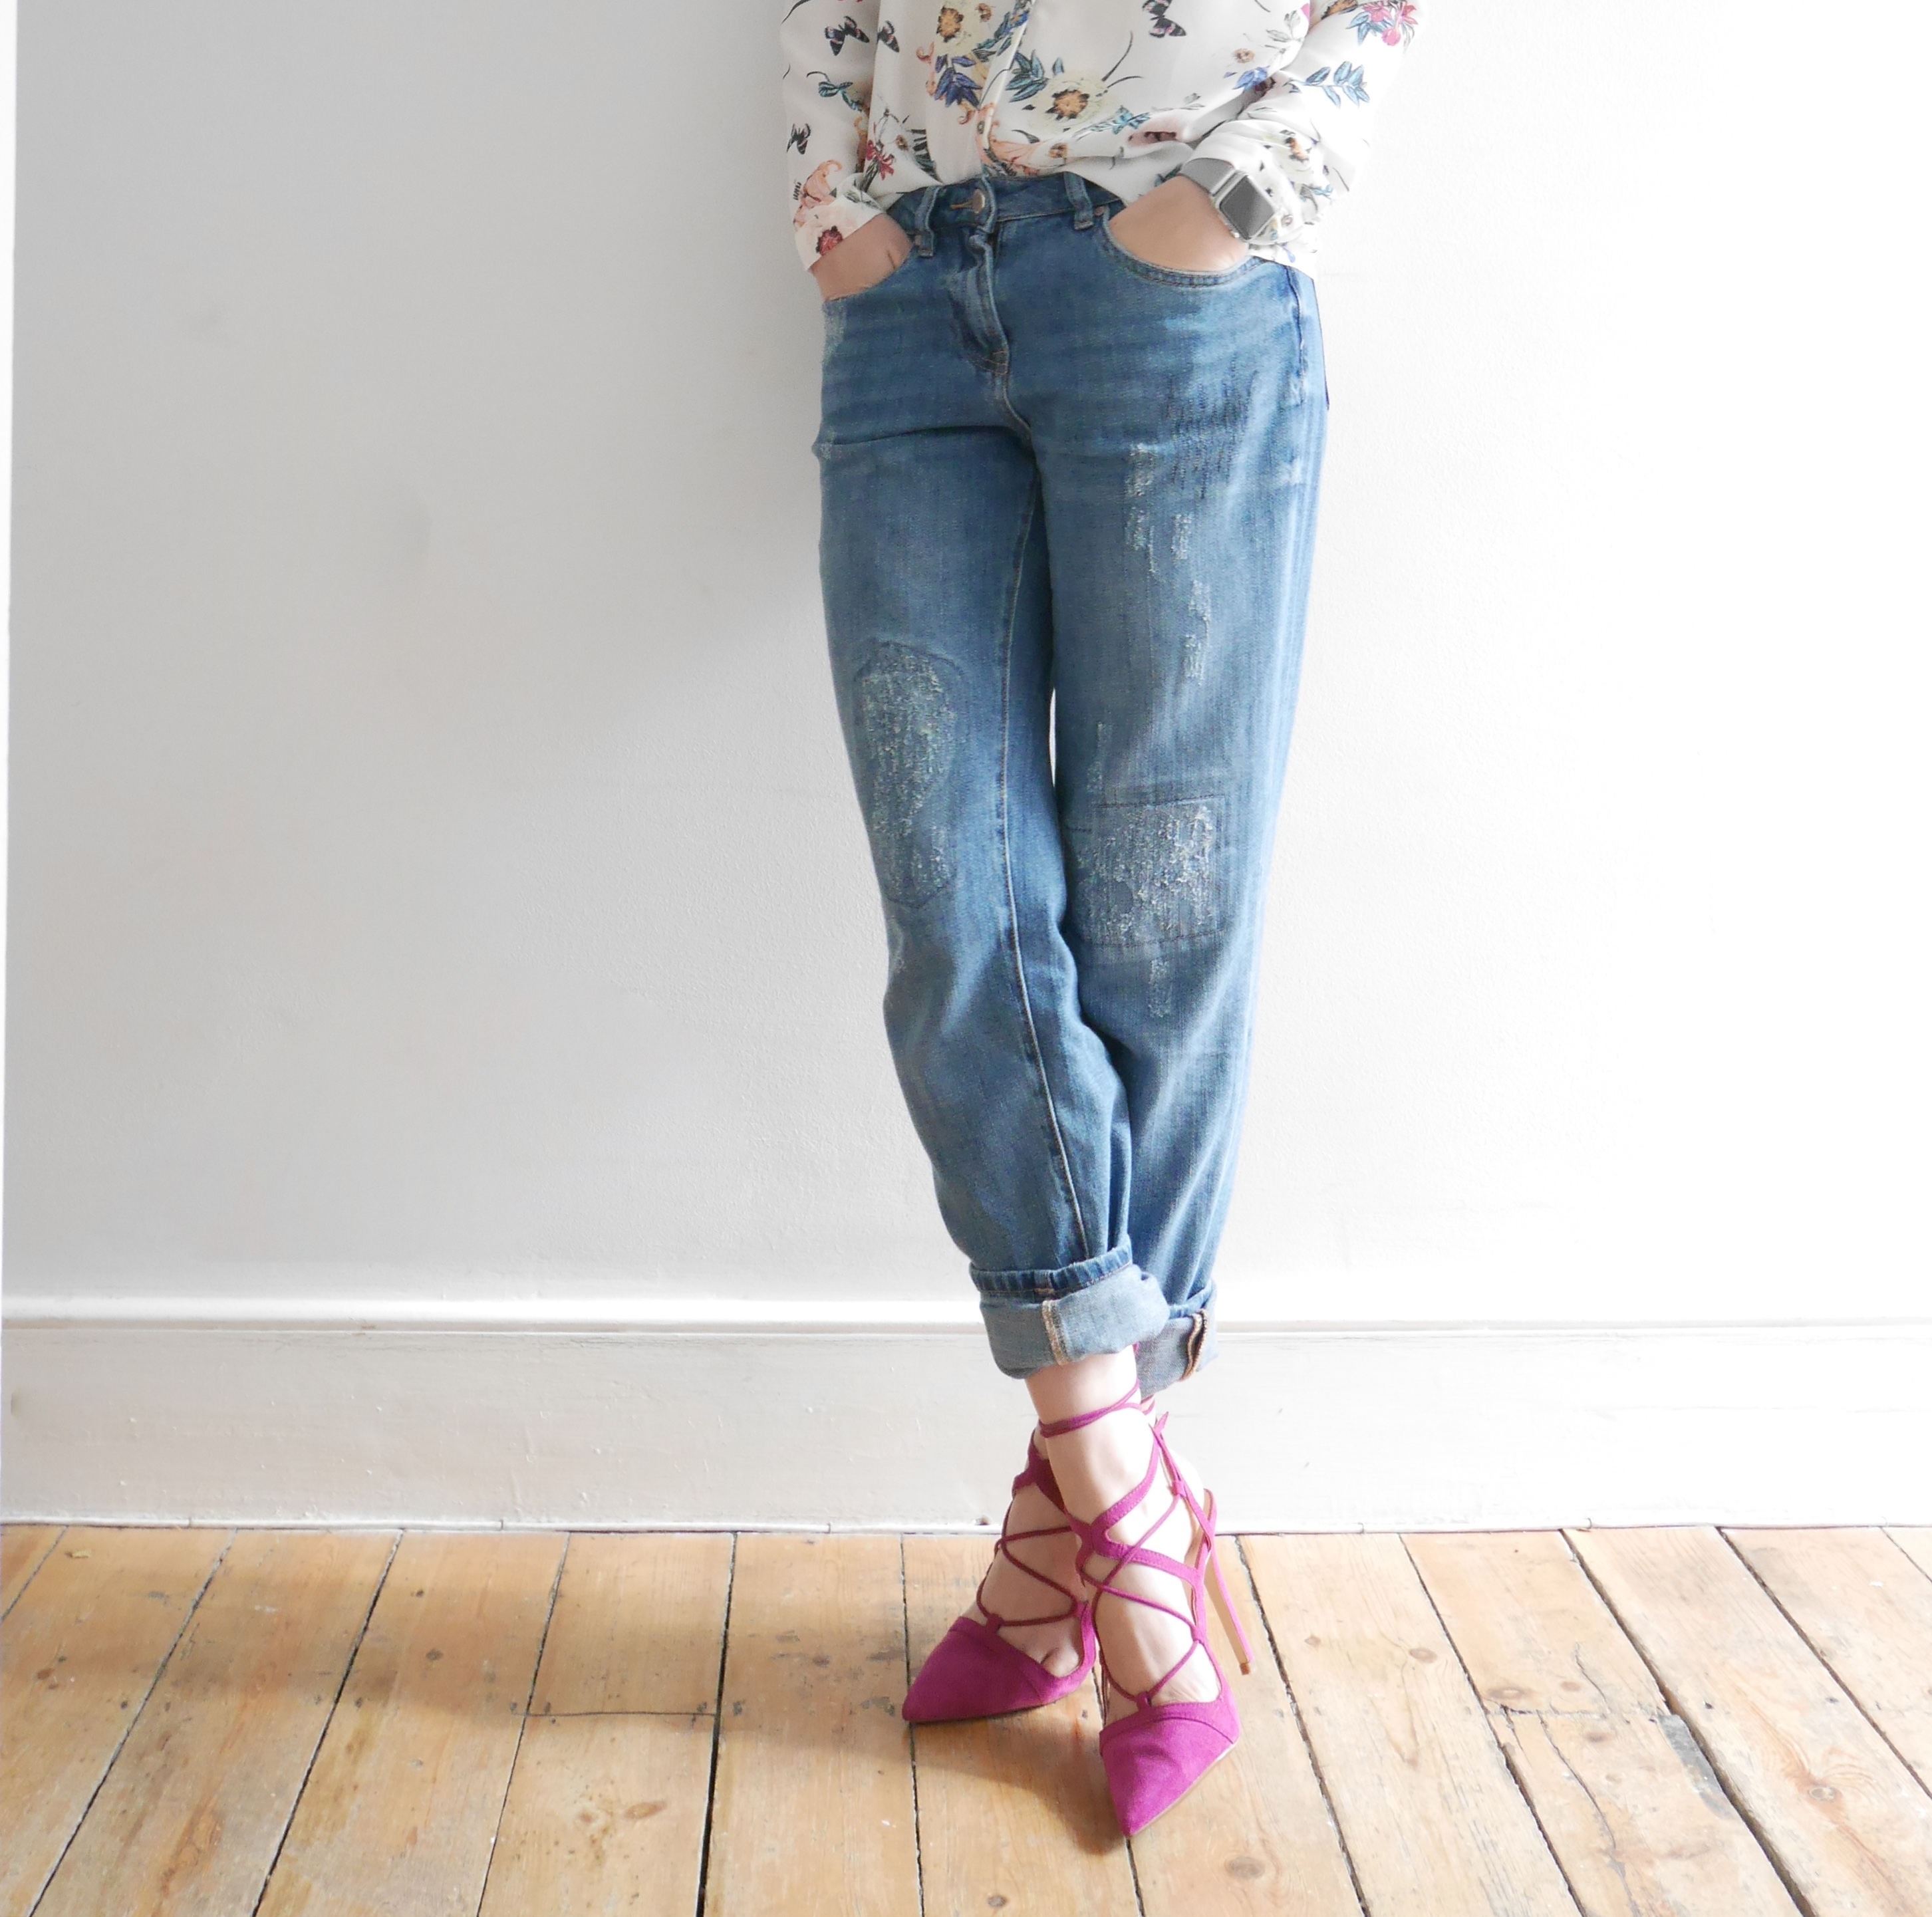 coco mama style | george | outfit inspiration| distressed boyfriend jeans